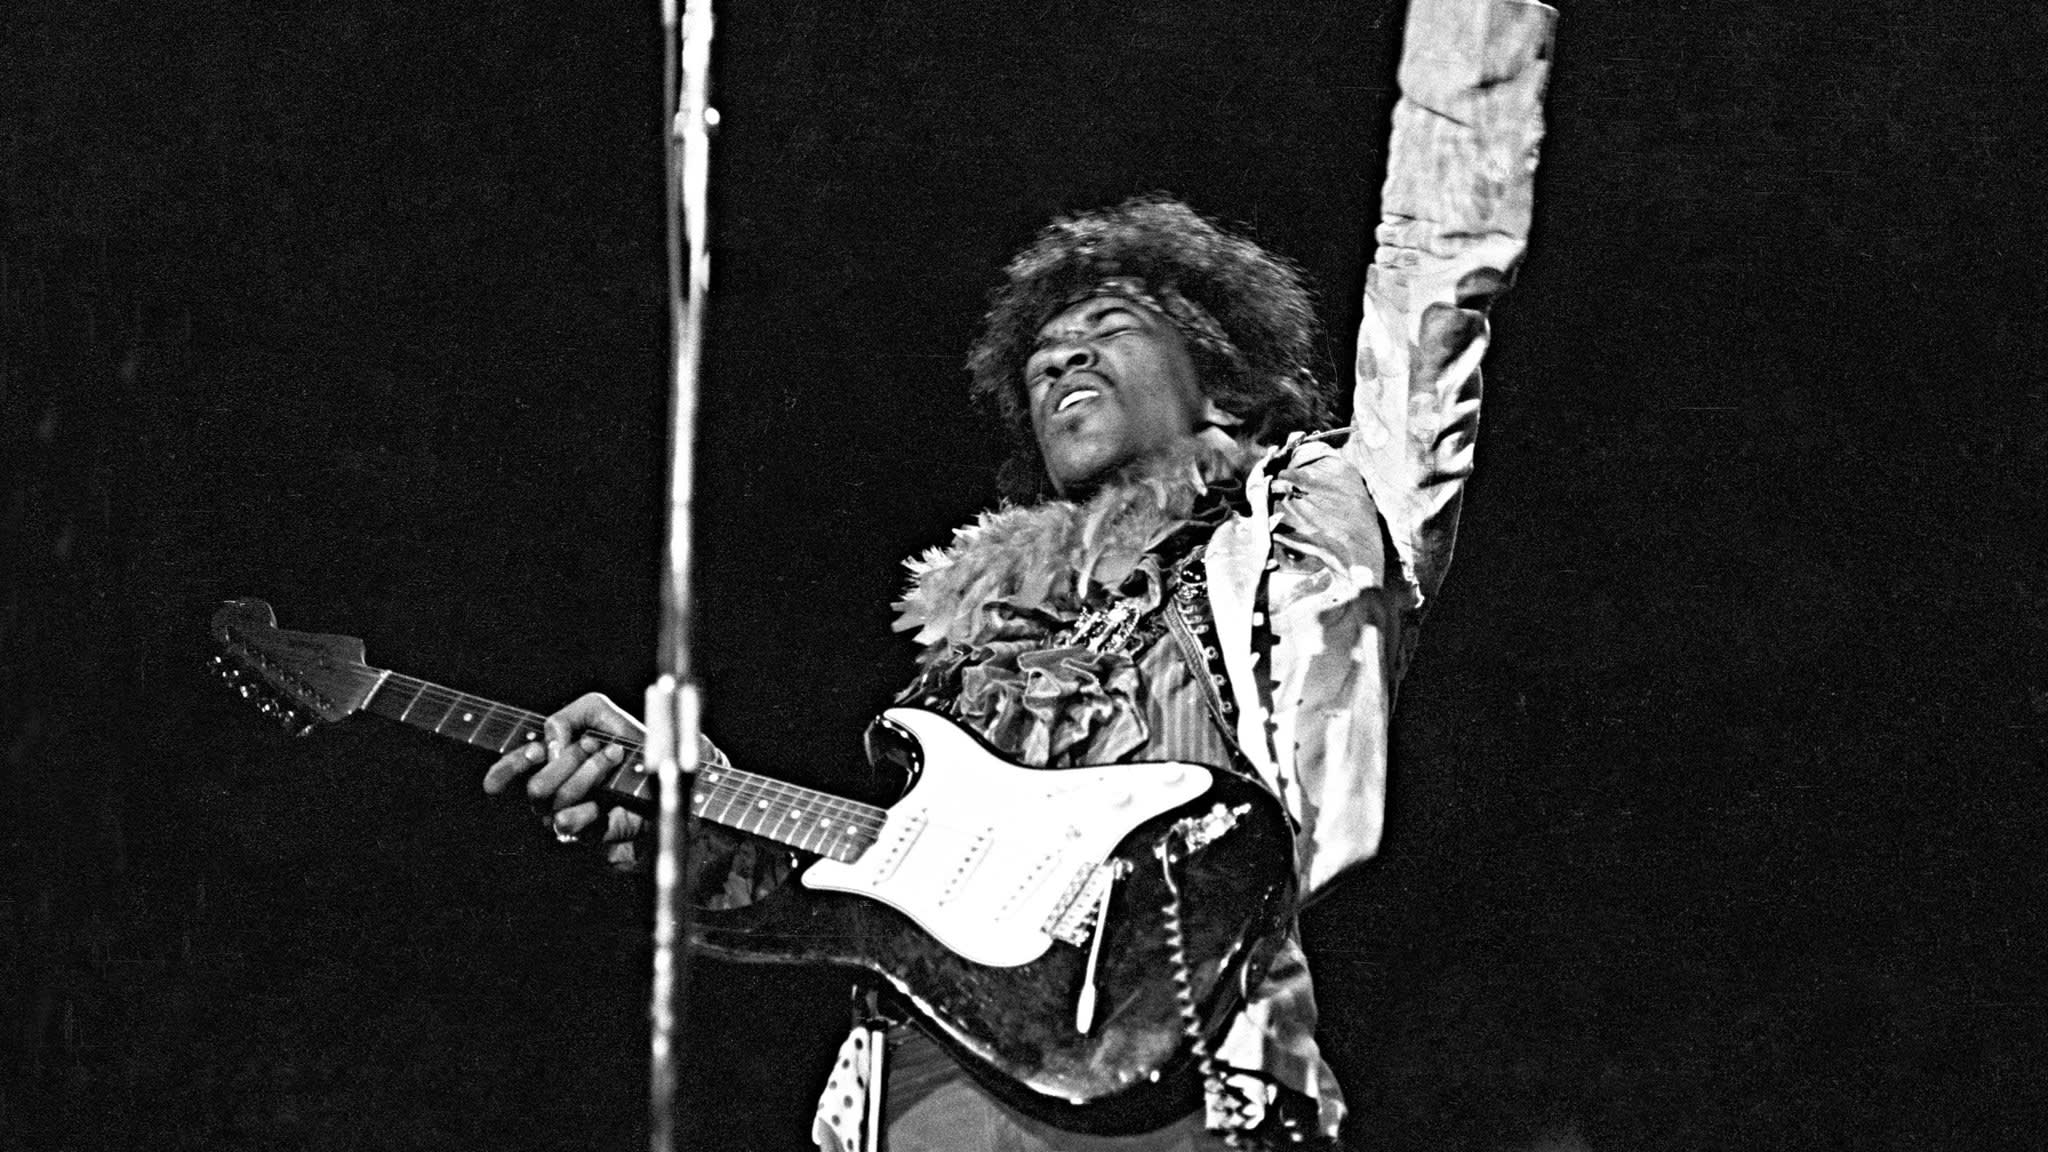 Bob dylans all along the watchtower redefined by jimi hendrix jimi hendrix performs at the monterey pop festival june 1967 altavistaventures Images